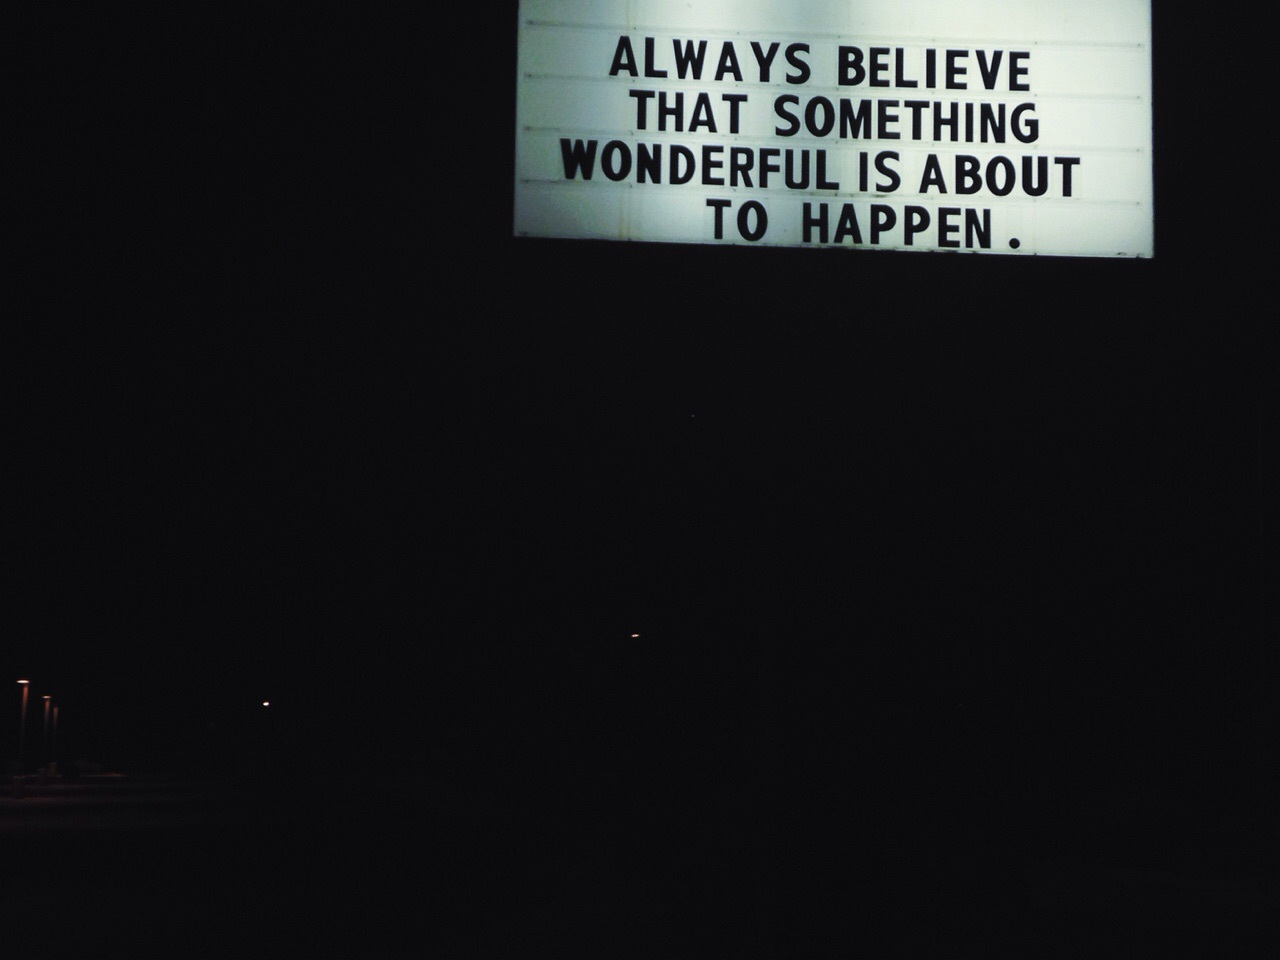 animal, attractive, beauty, black and white, boy, celebrity, chicago, christmas, couple, cute, fashion, friends, gift, girl, hair, happy, inspire, justin bieber, lights, makeup, motivation, music, new york, quote, relationship, travel